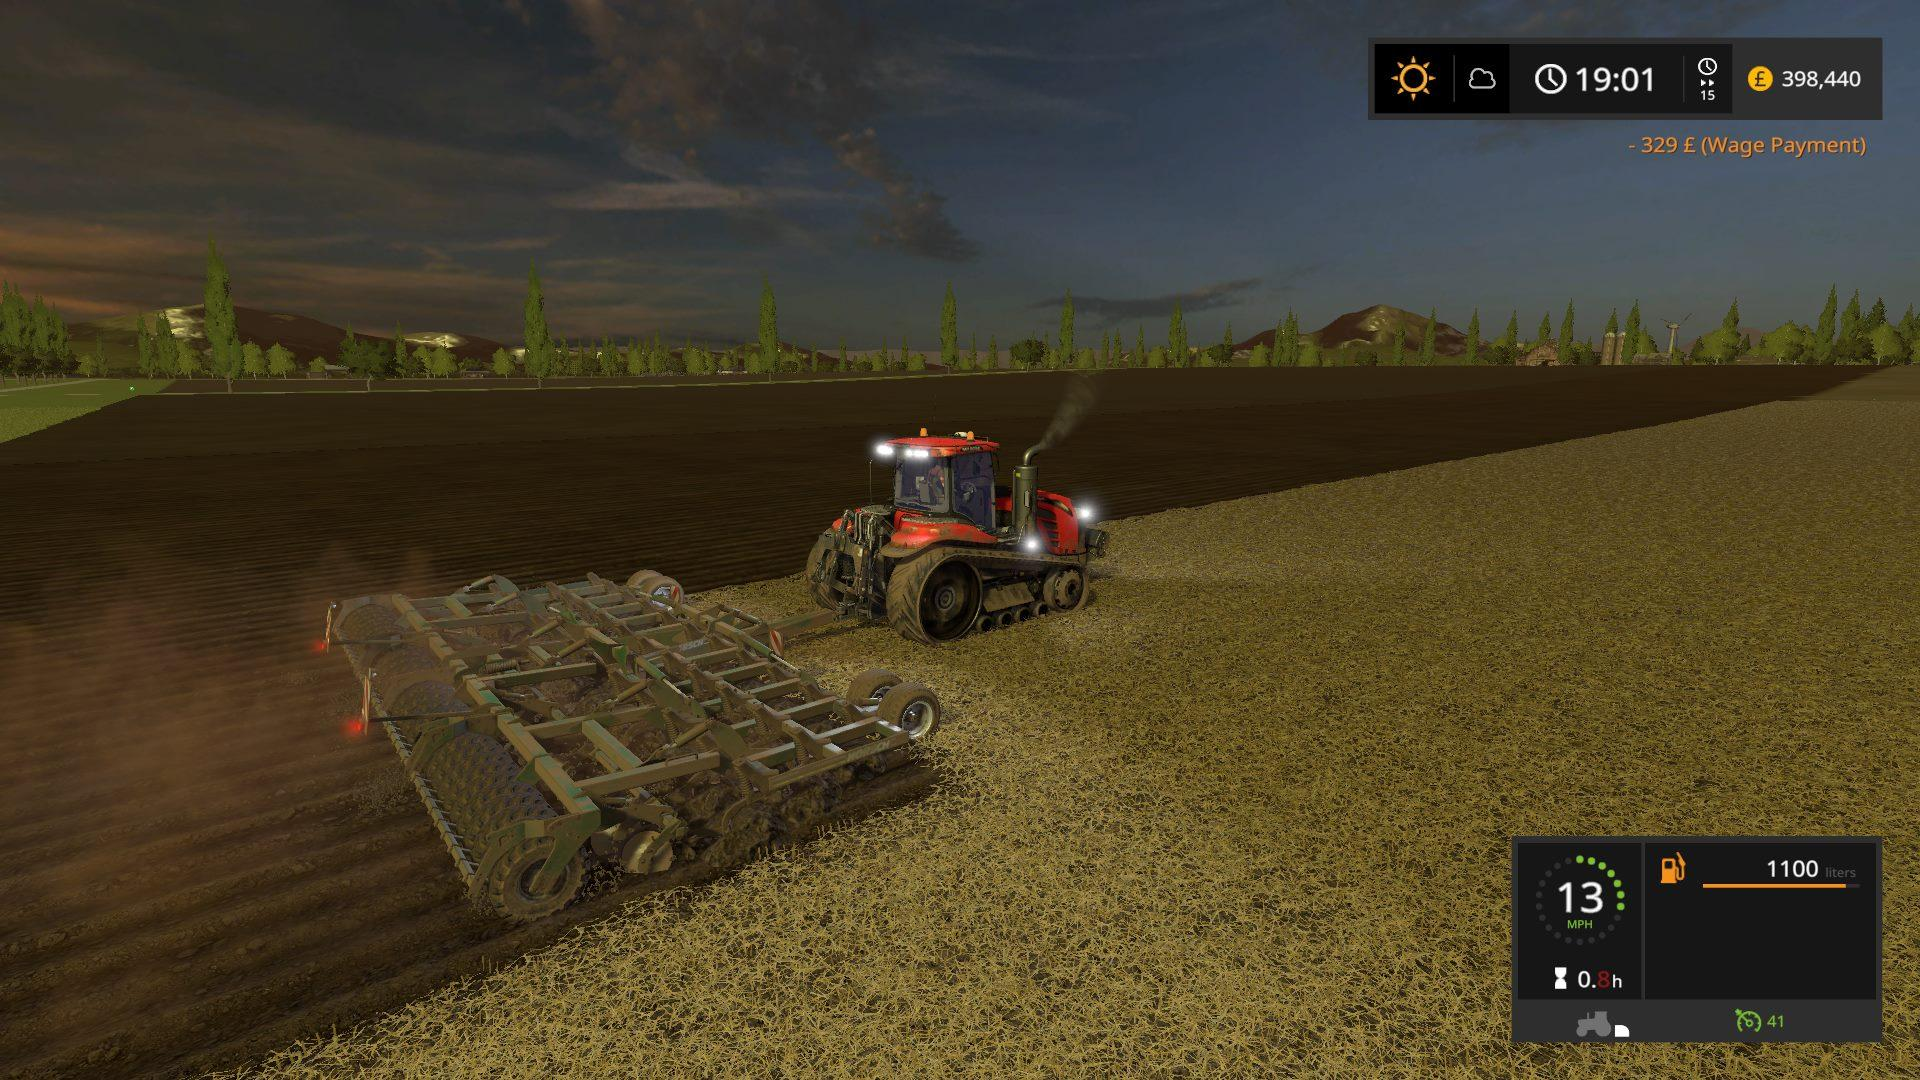 cow farming simulator 2013 map with Plains And Simple 2017 Fix Ls17 on Fs2015 American Heart Land further Cow Silo Placement Ge V1 0 likewise Mods besides Bearbeitete Bjornholm besides Hagenstedt V 1 2 5 0 Fs15.